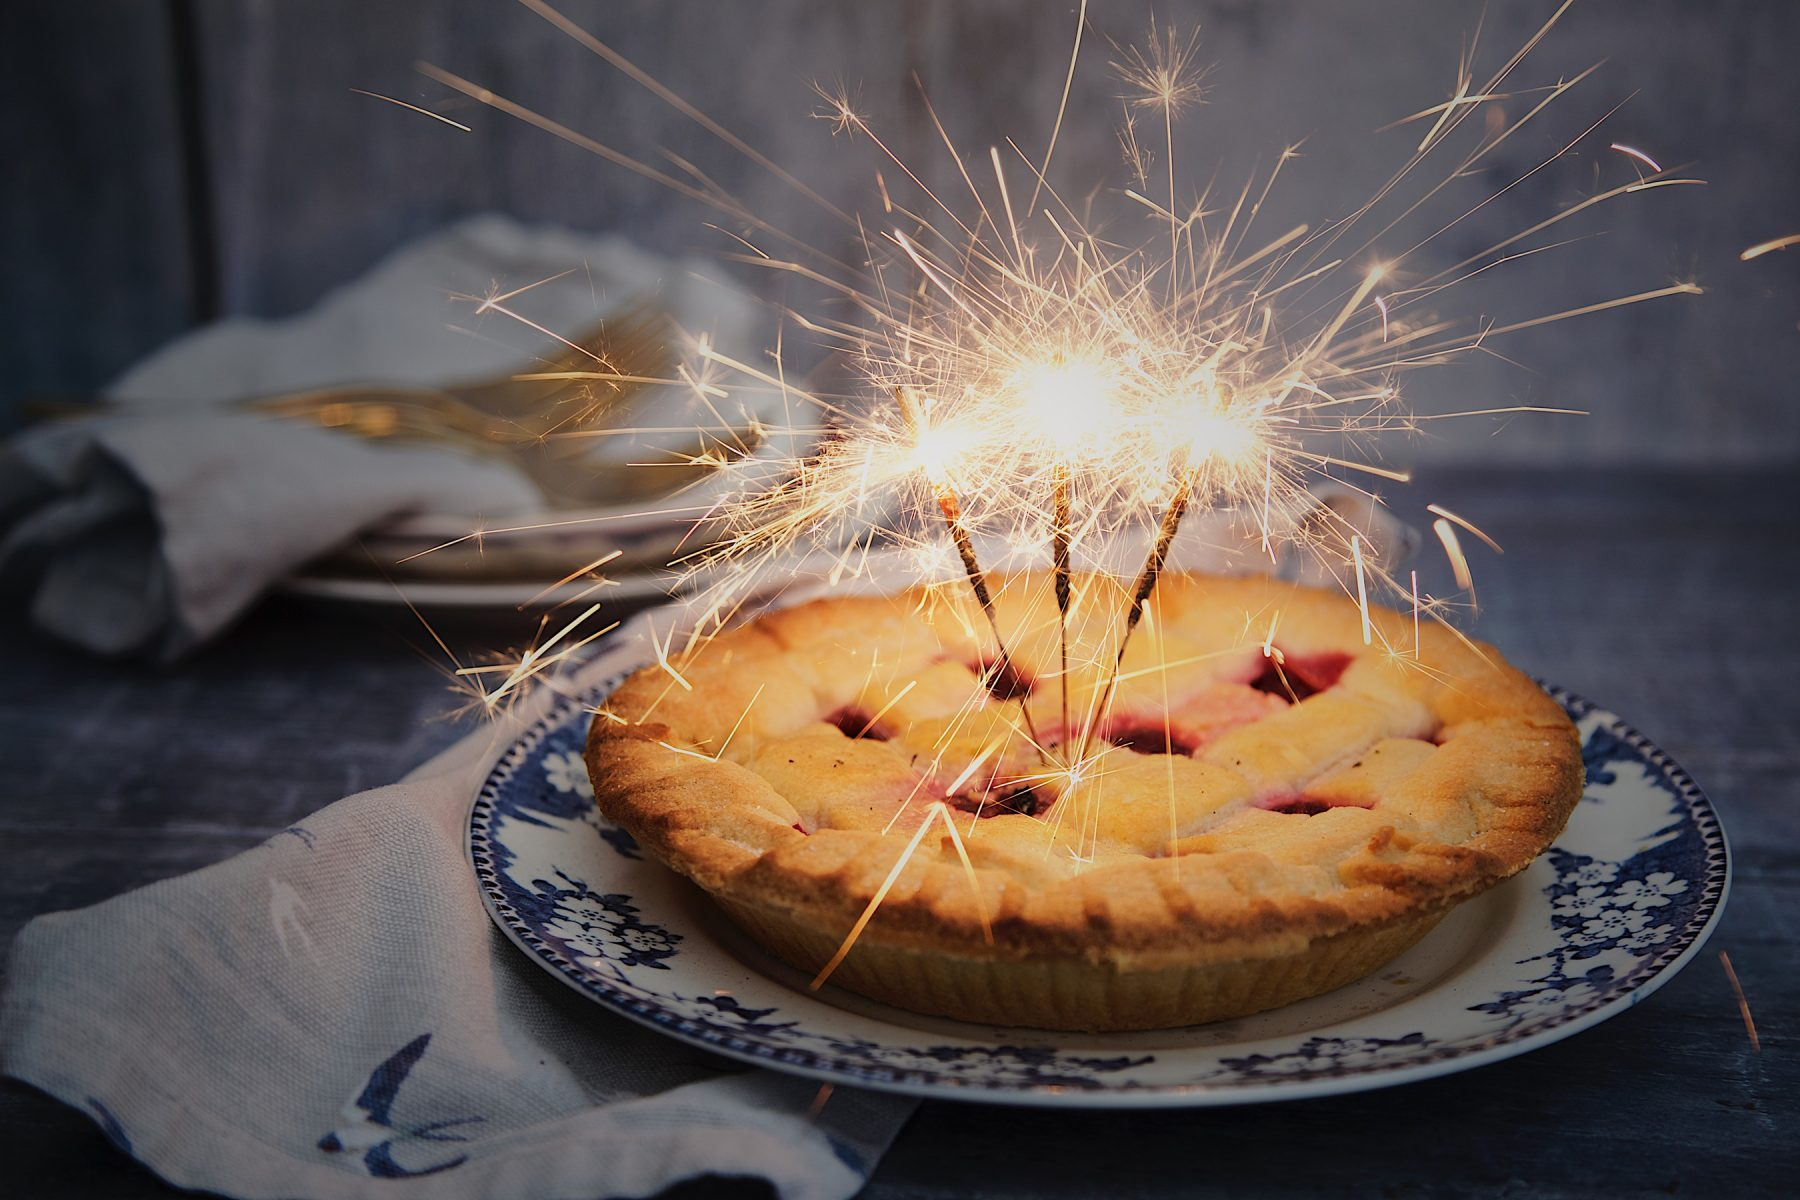 Photo montage of a berry pie with sparklers to celebrate Independence Day